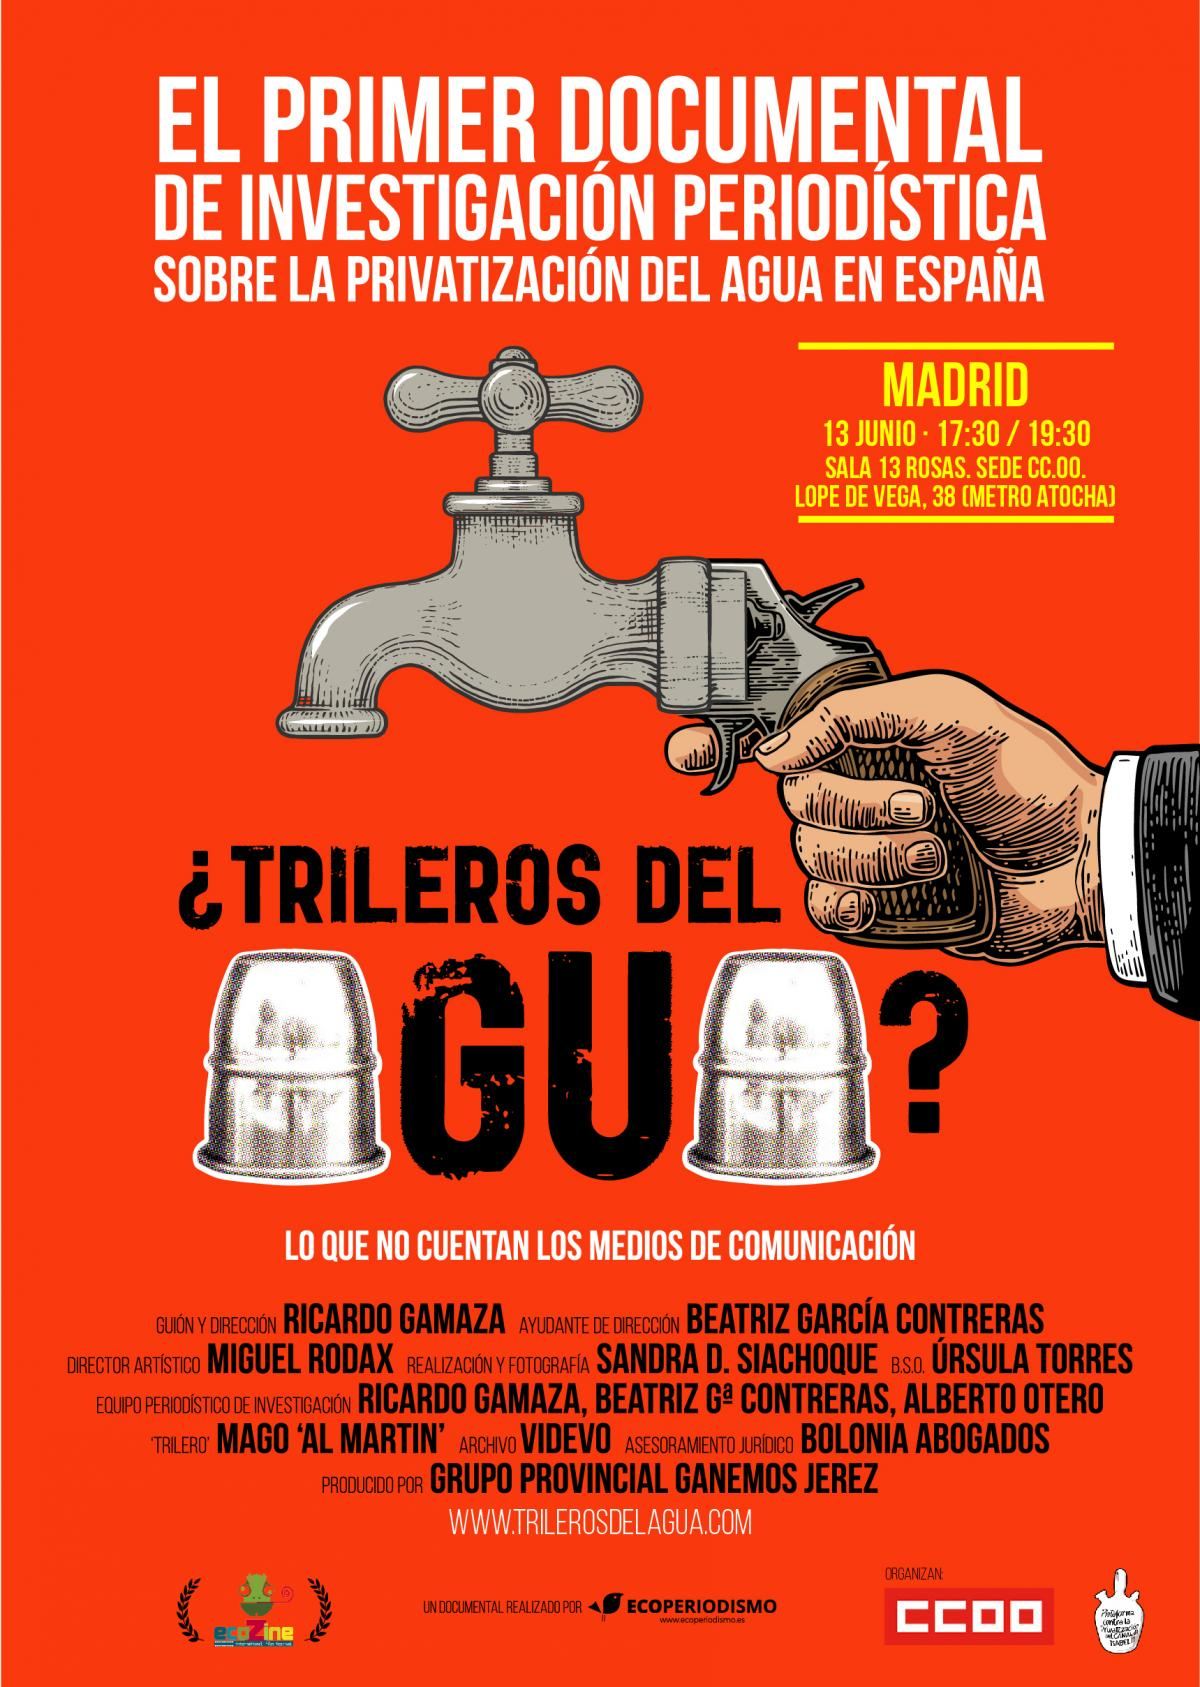 Documental investigación sobre la privatización del agua